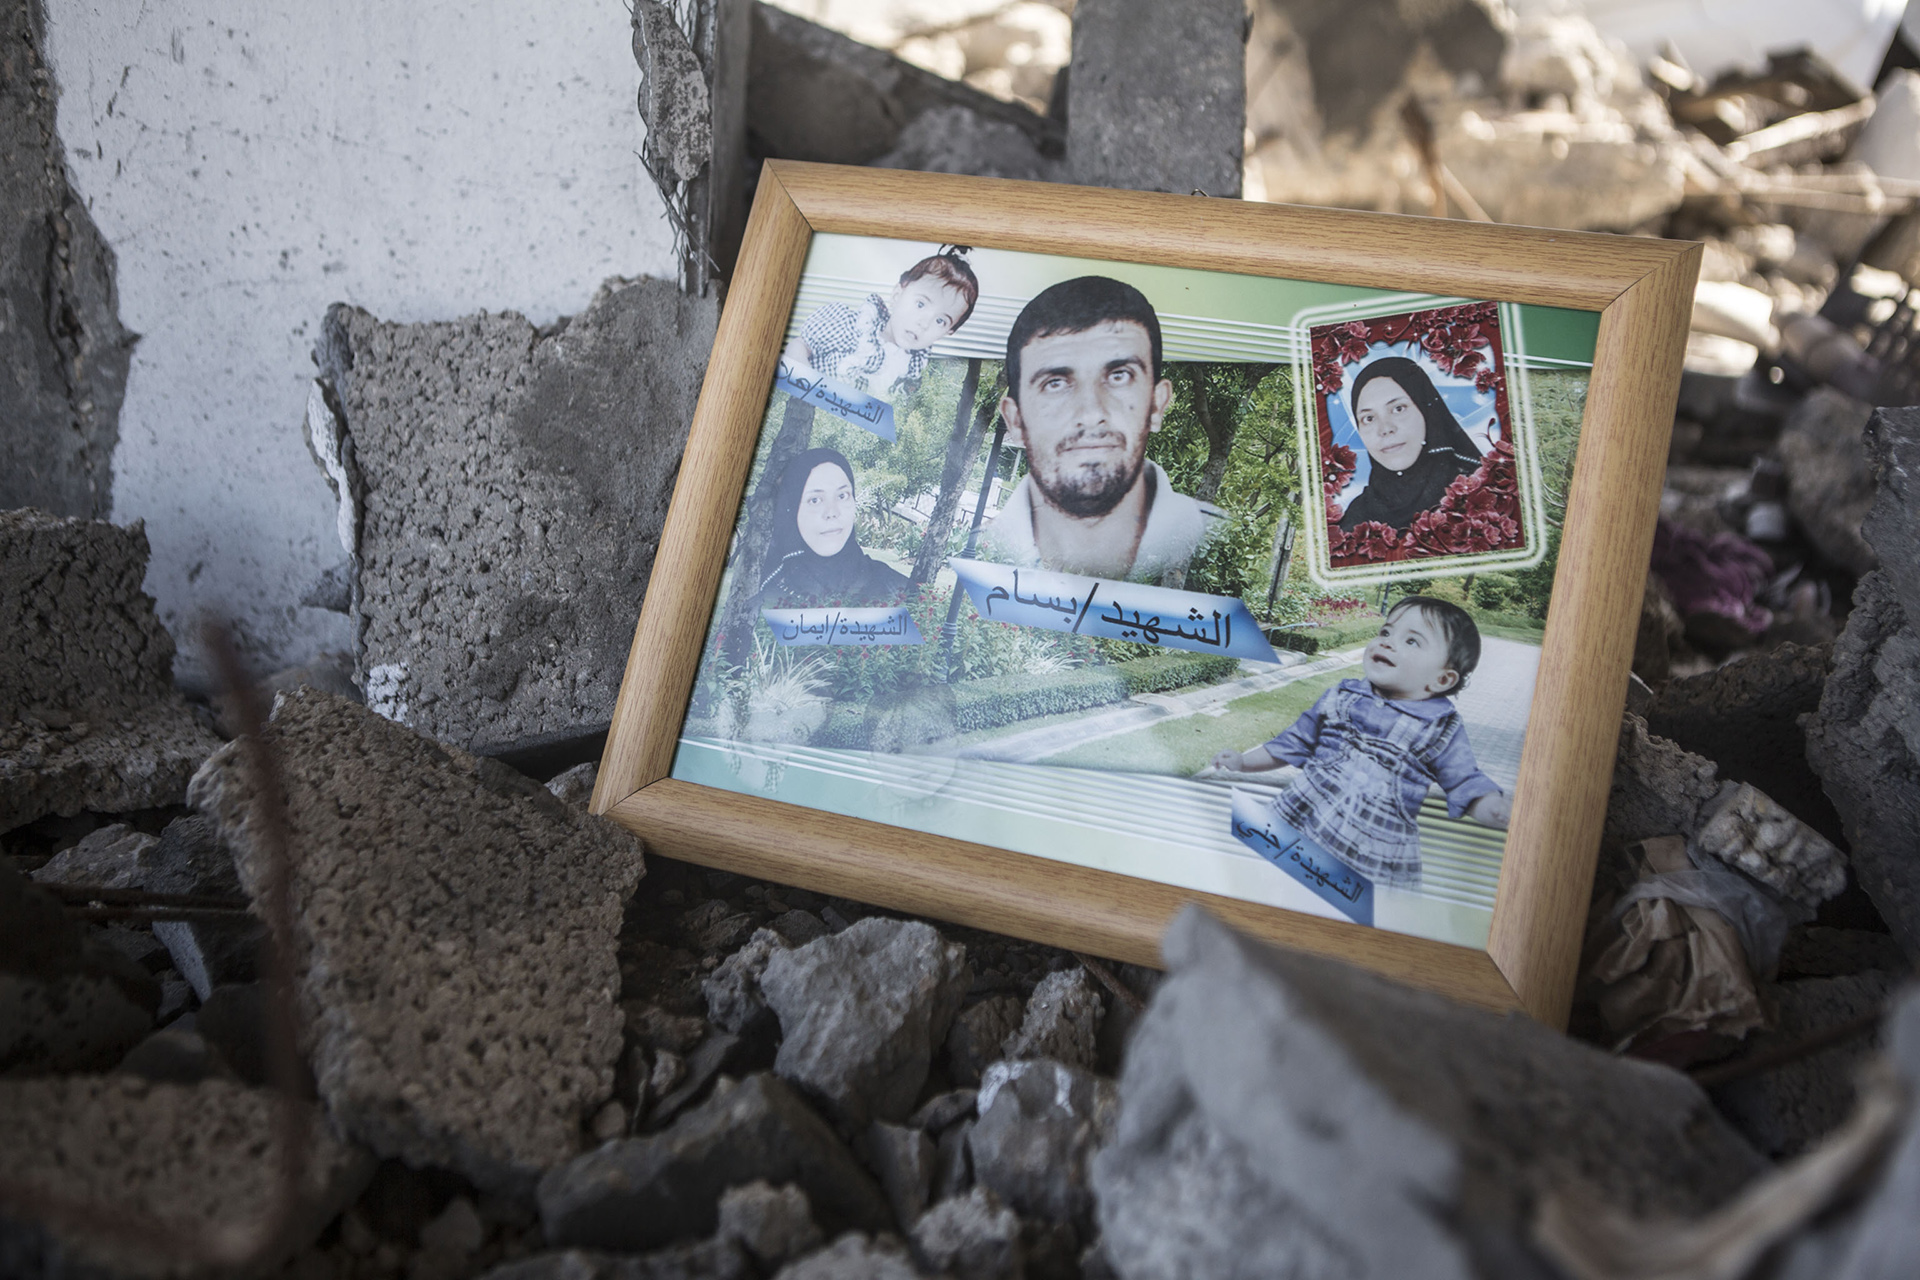 Photos of Zakiya's son, Bassam, his wife Iman and their two daughters Hala and Jana. Two other members of the Maadi family were killed in that airstrike: two-year-old Yousef, Zakiya's grandson, and Suleiman, Zakiya's brother-in-law, who died a week later in Egypt, where he was sent for treatment.